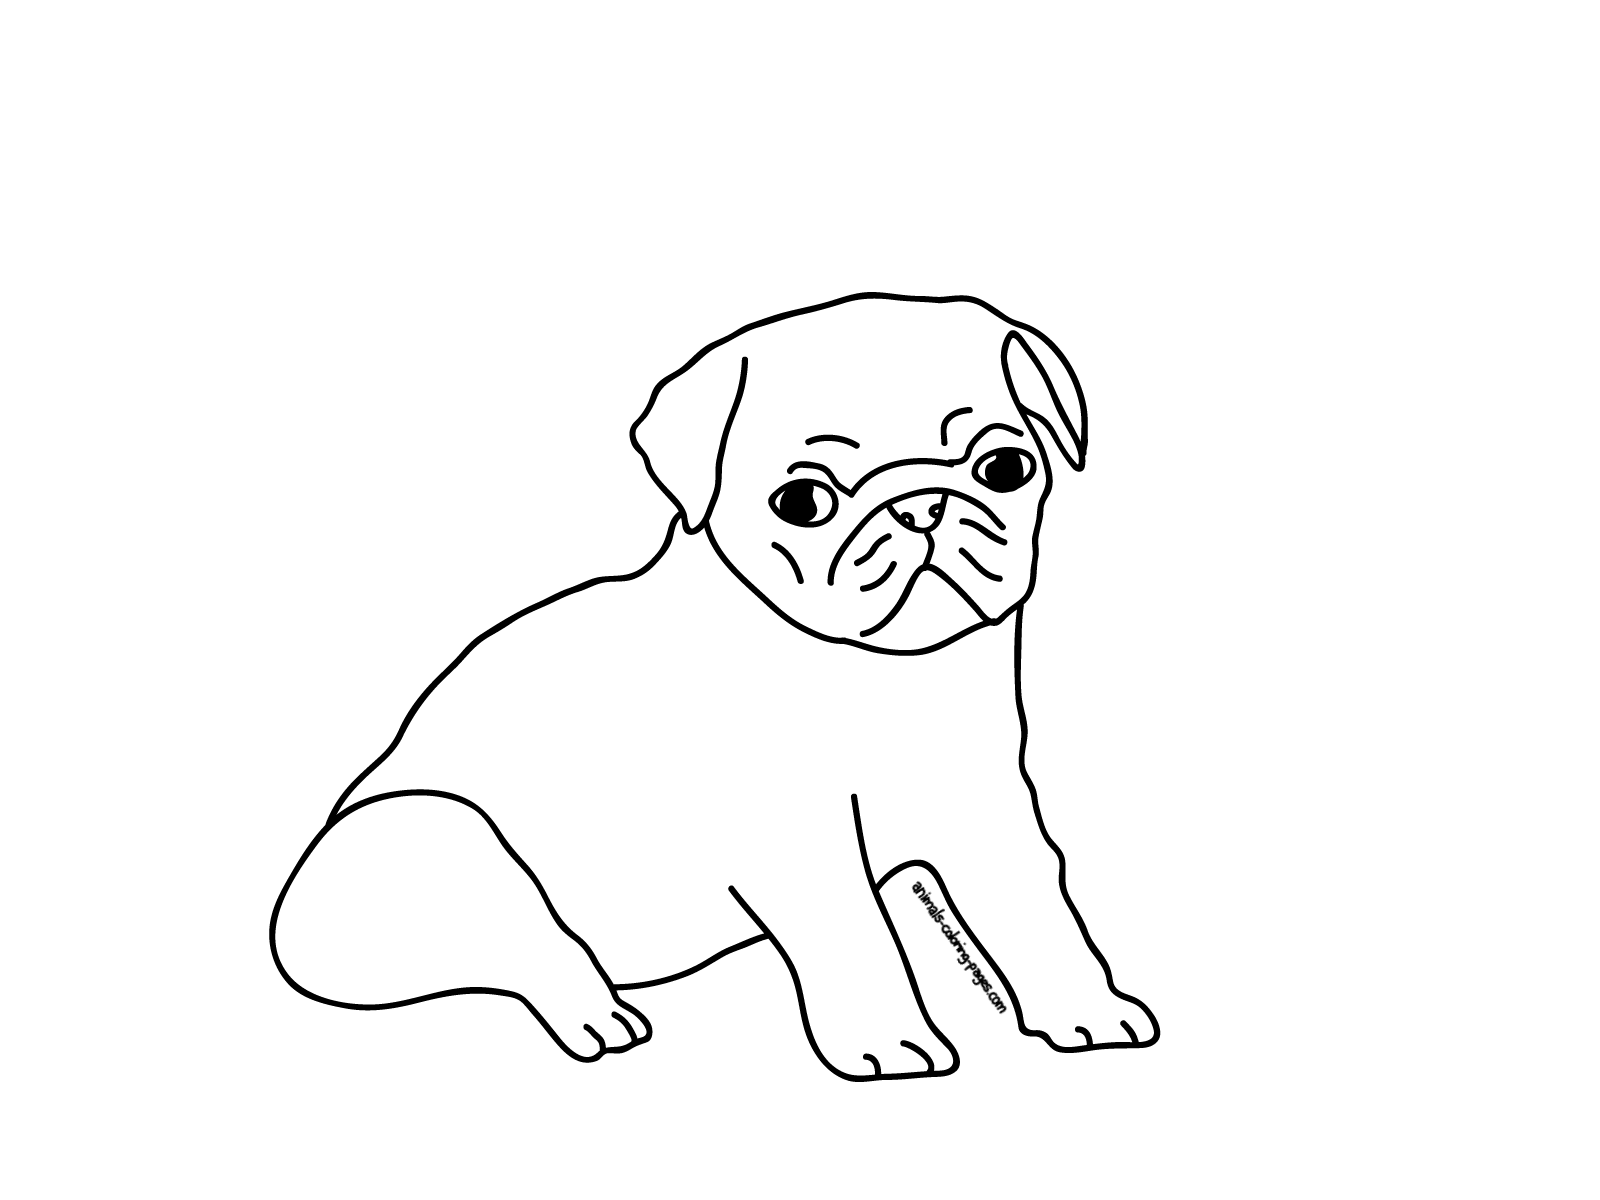 Puppy Step By Step Drawing At Getdrawings Com Free For Personal